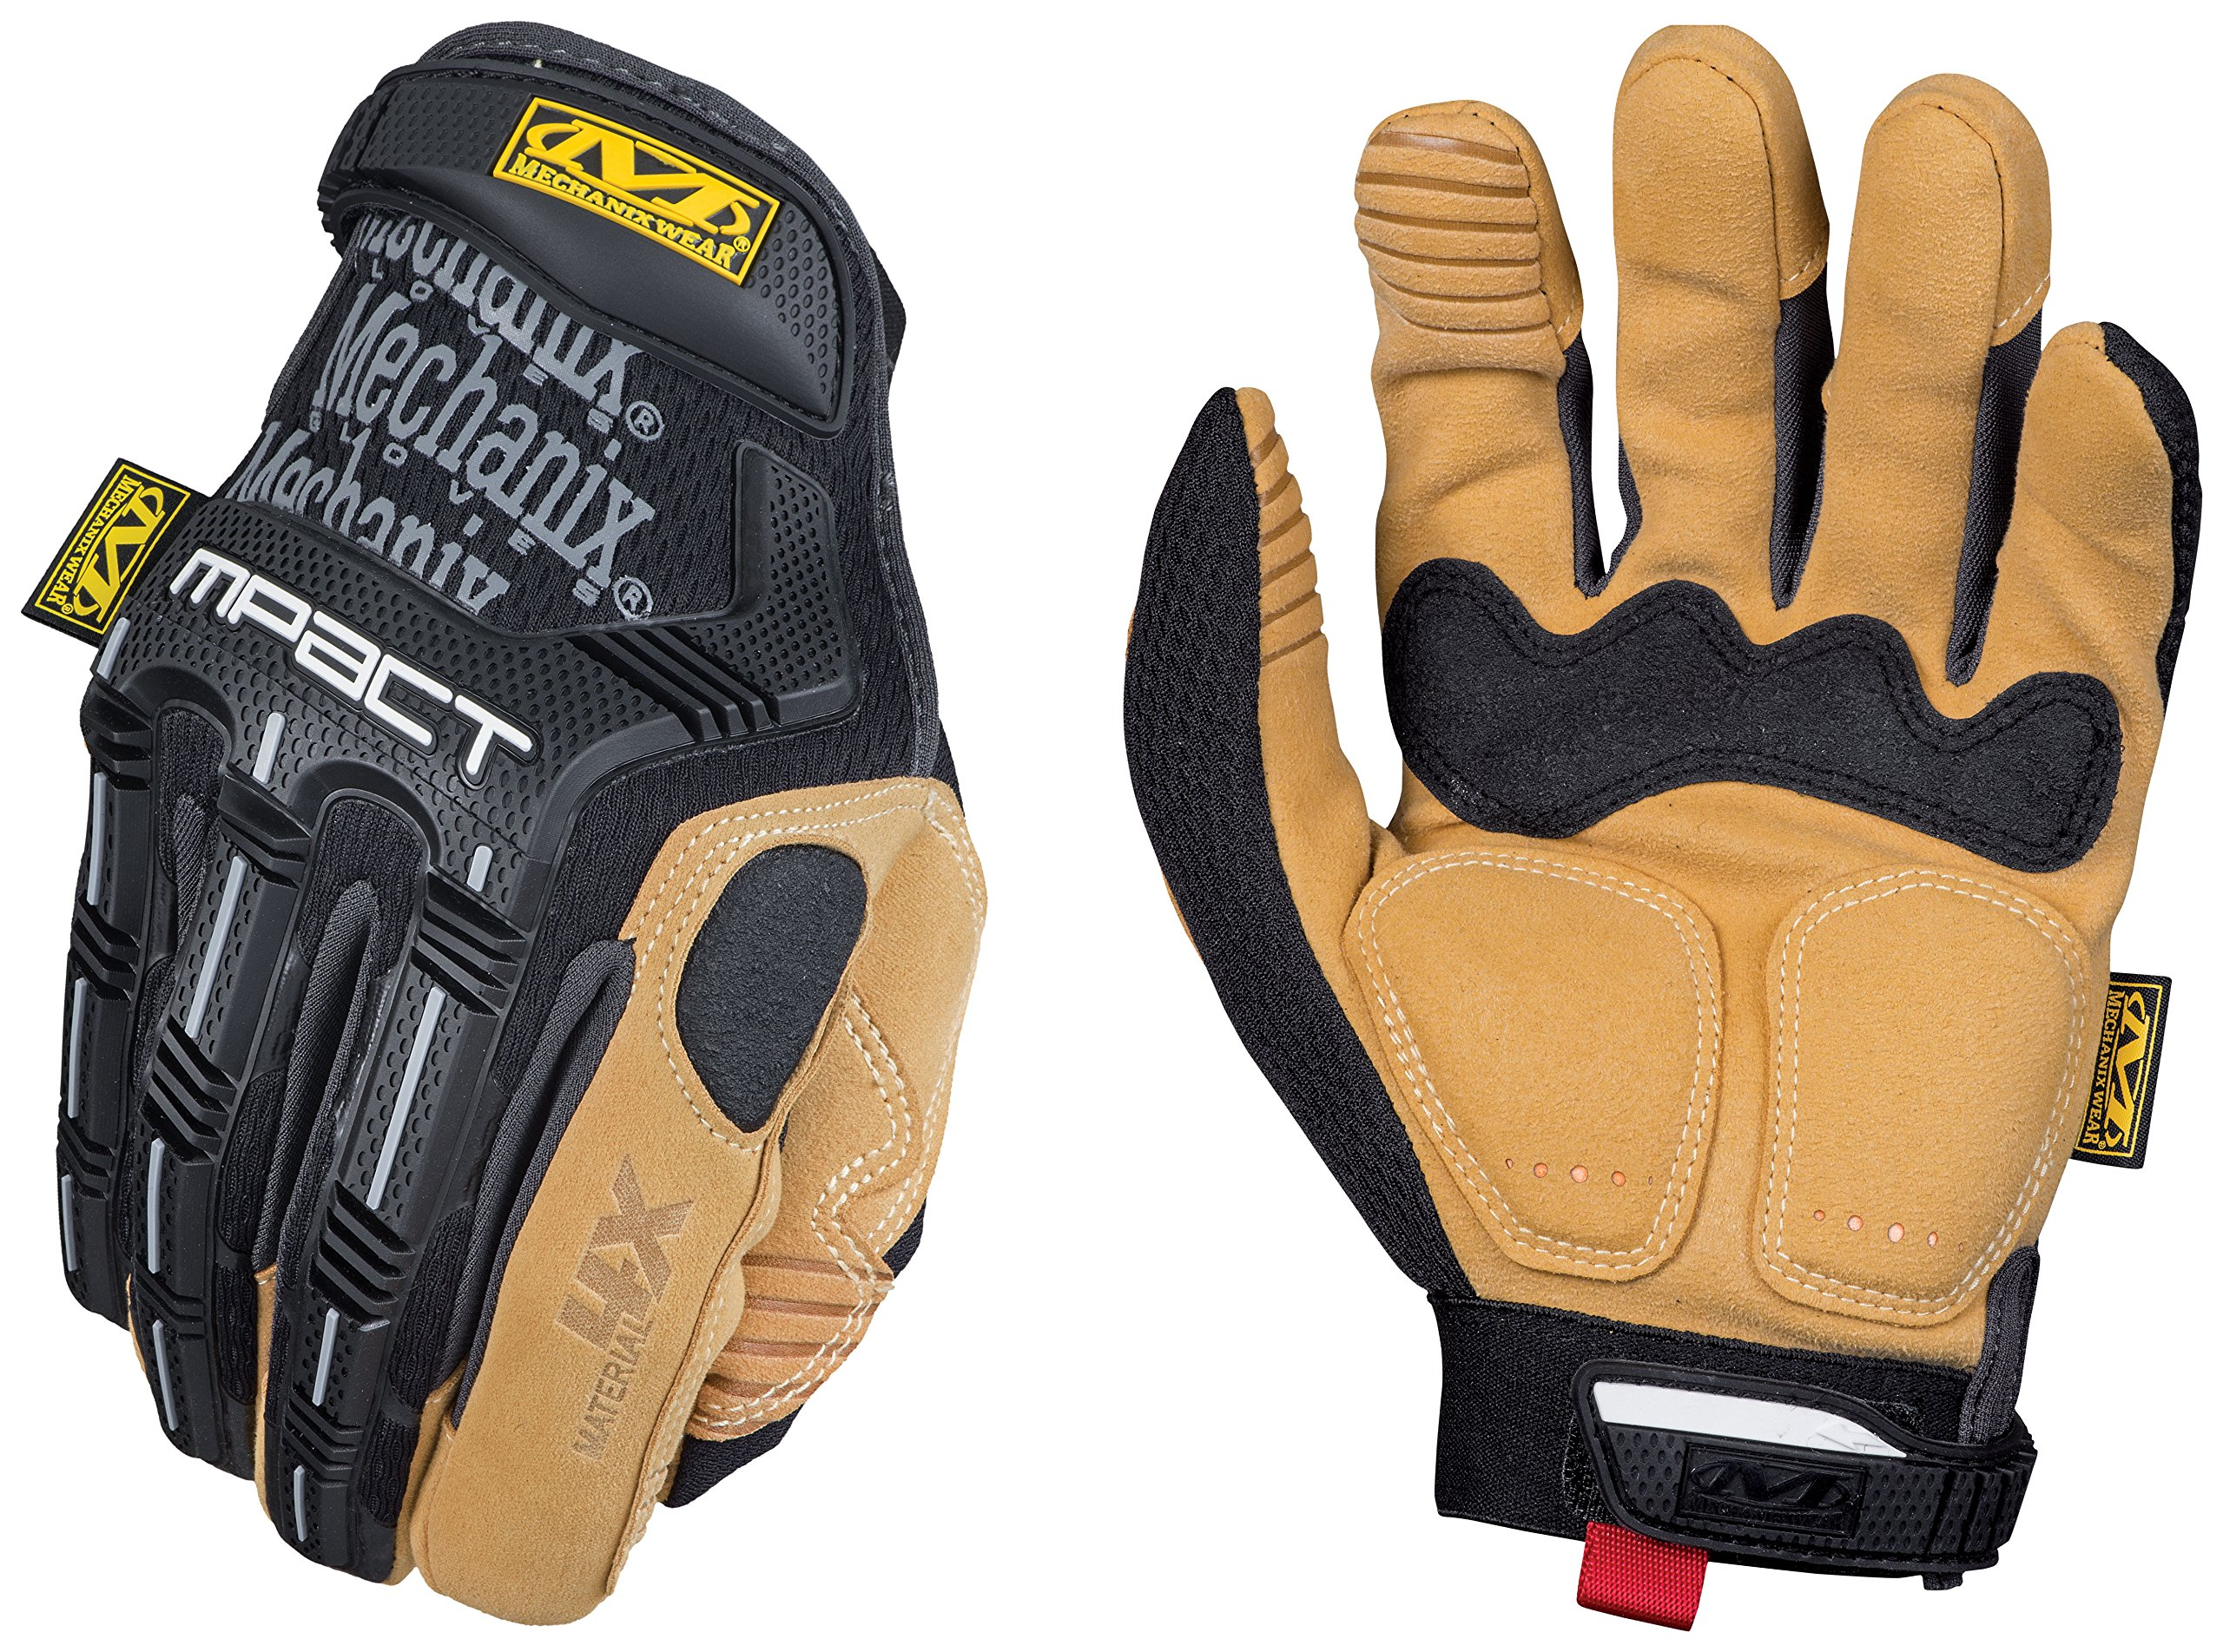 Mechanix Wear - Material4X M-Pact Work Gloves (Large, Brown/Black) by Mechanix Wear